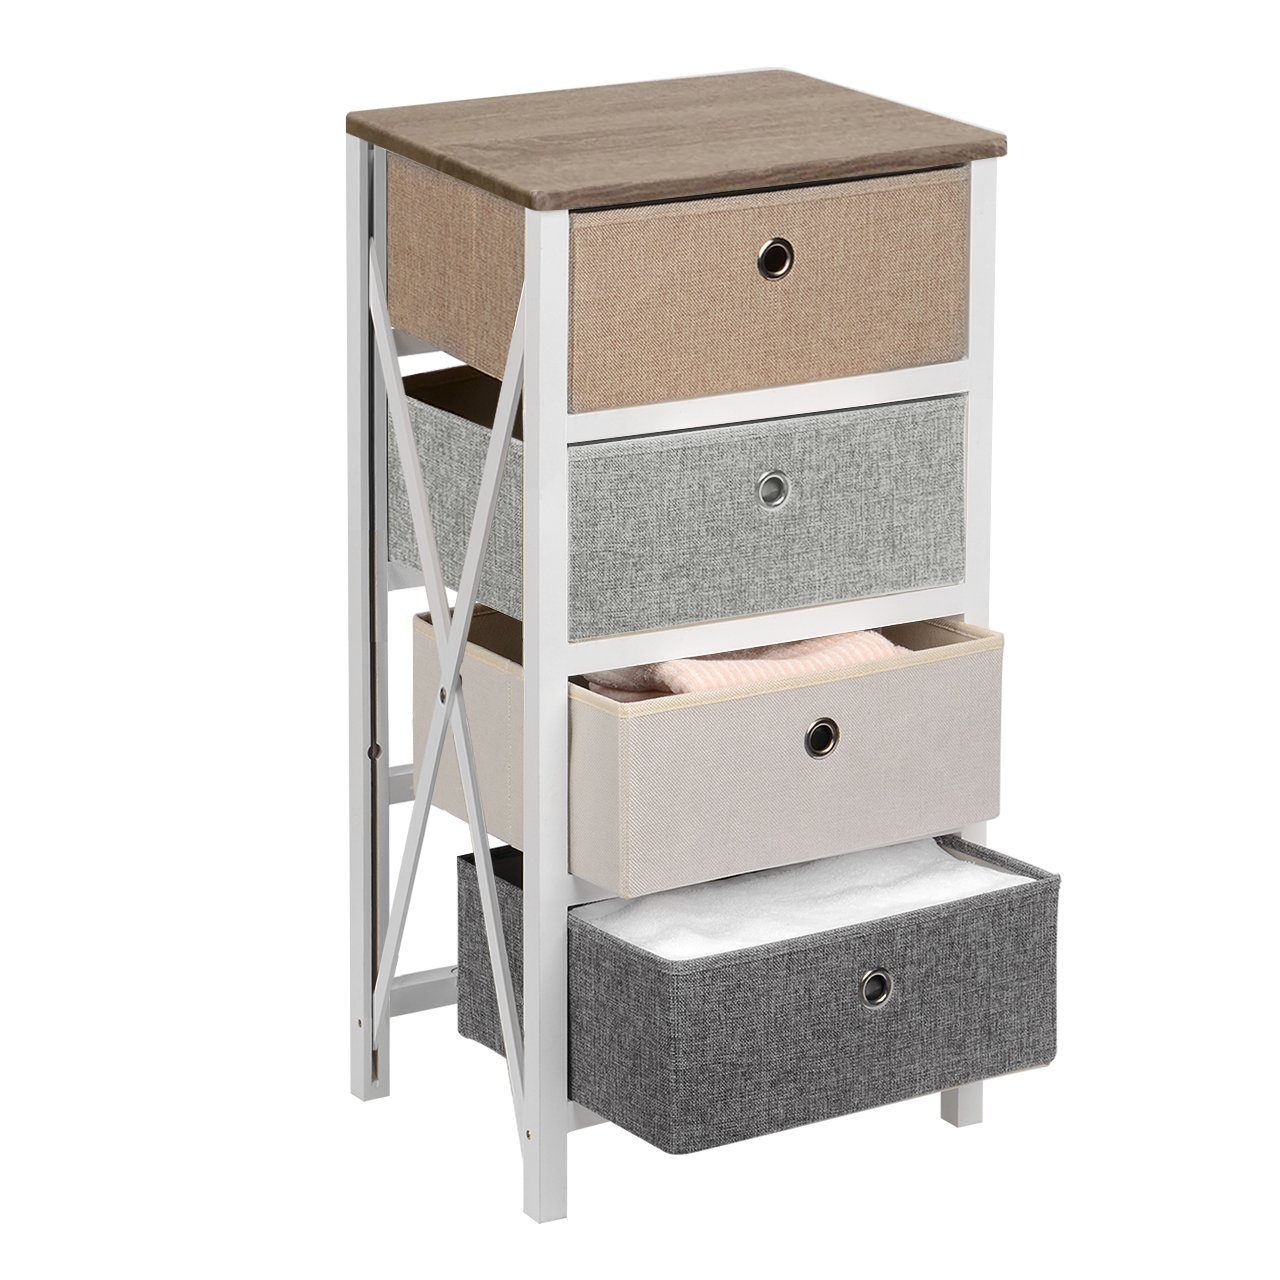 SortWise Modern Style End Table/Night Stand with 3 Storage Bins for Bedroom Organizer